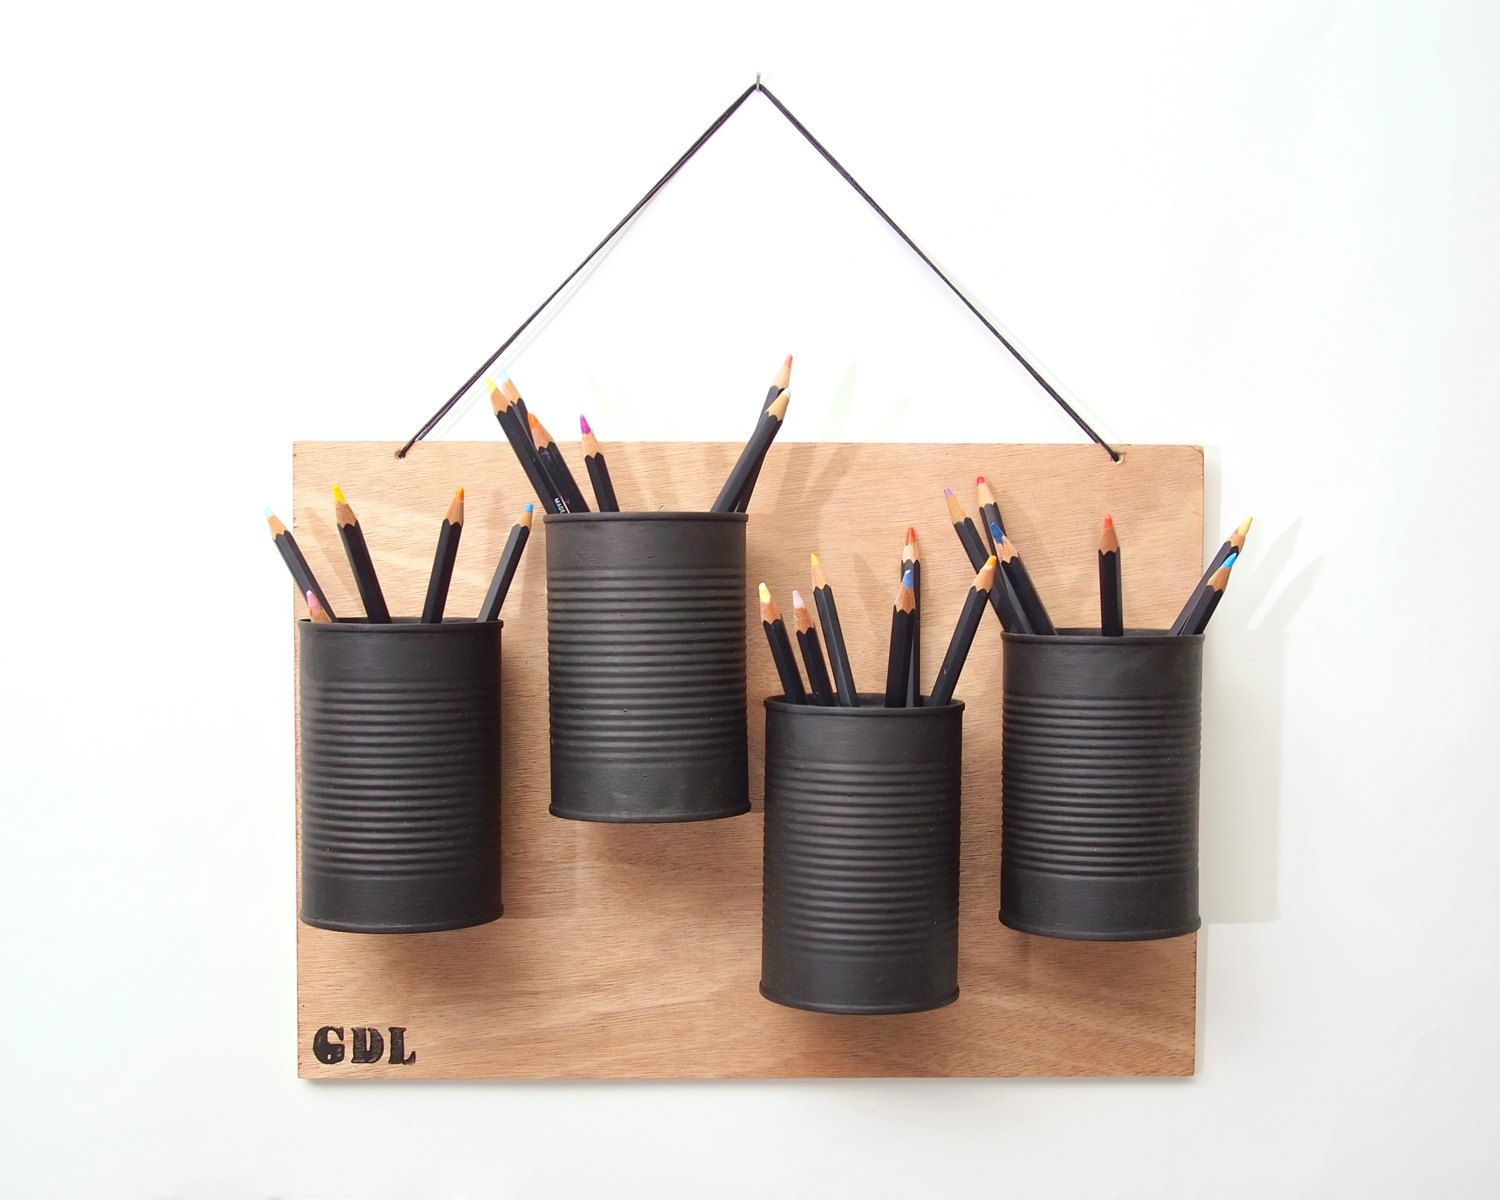 recycled hanging pencil holder - recycled wood and tin cans